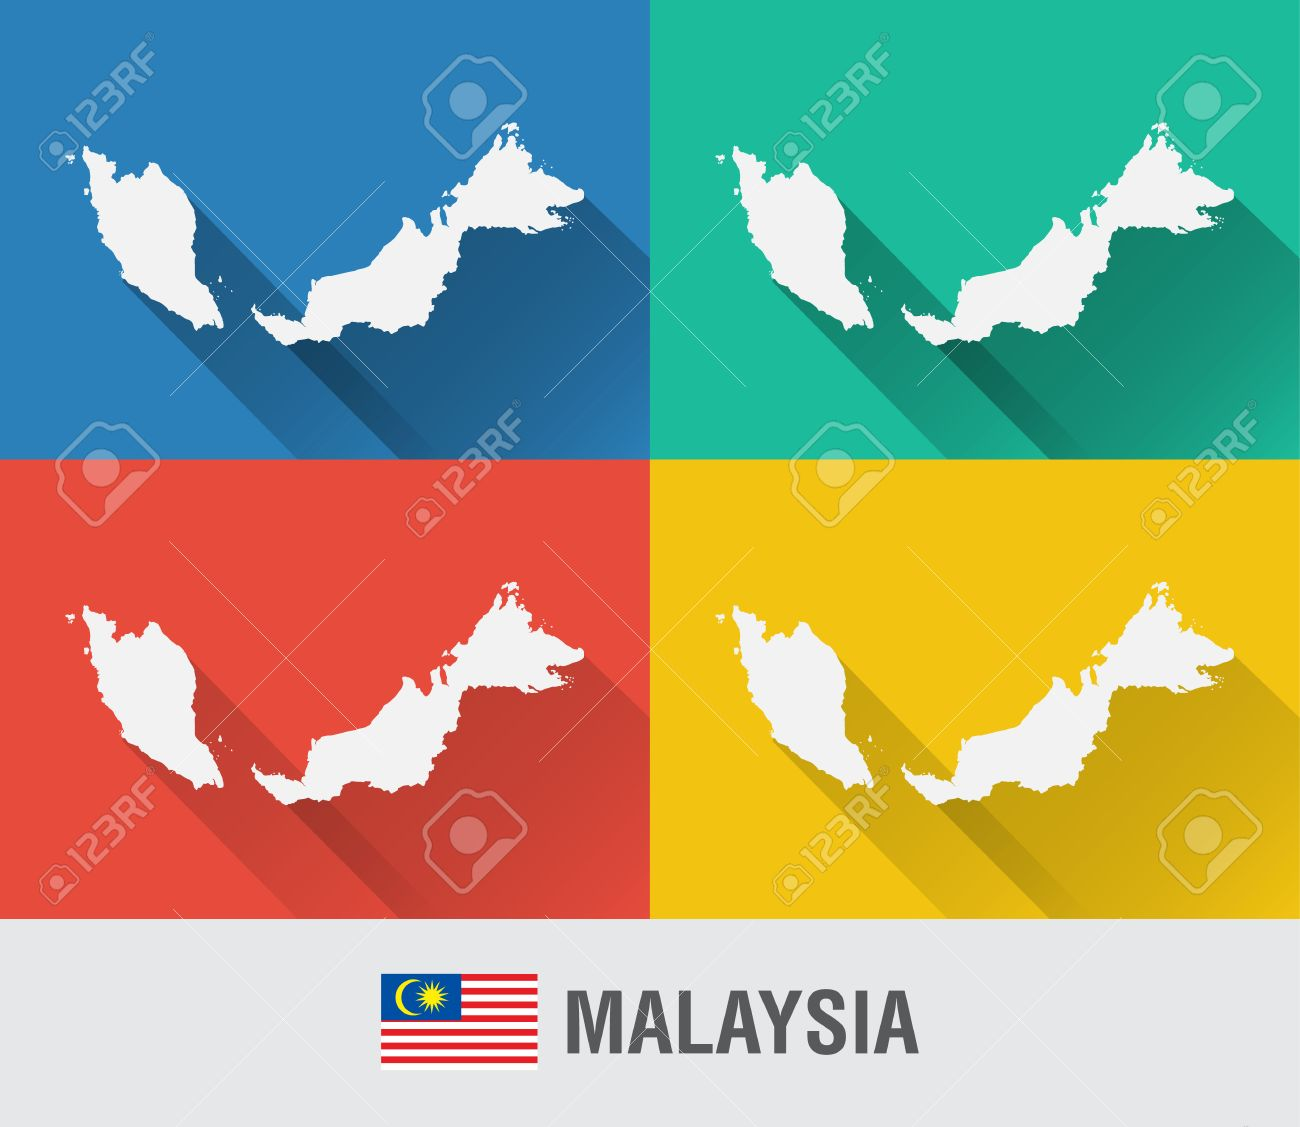 Malaysia World Map In Flat Sty...